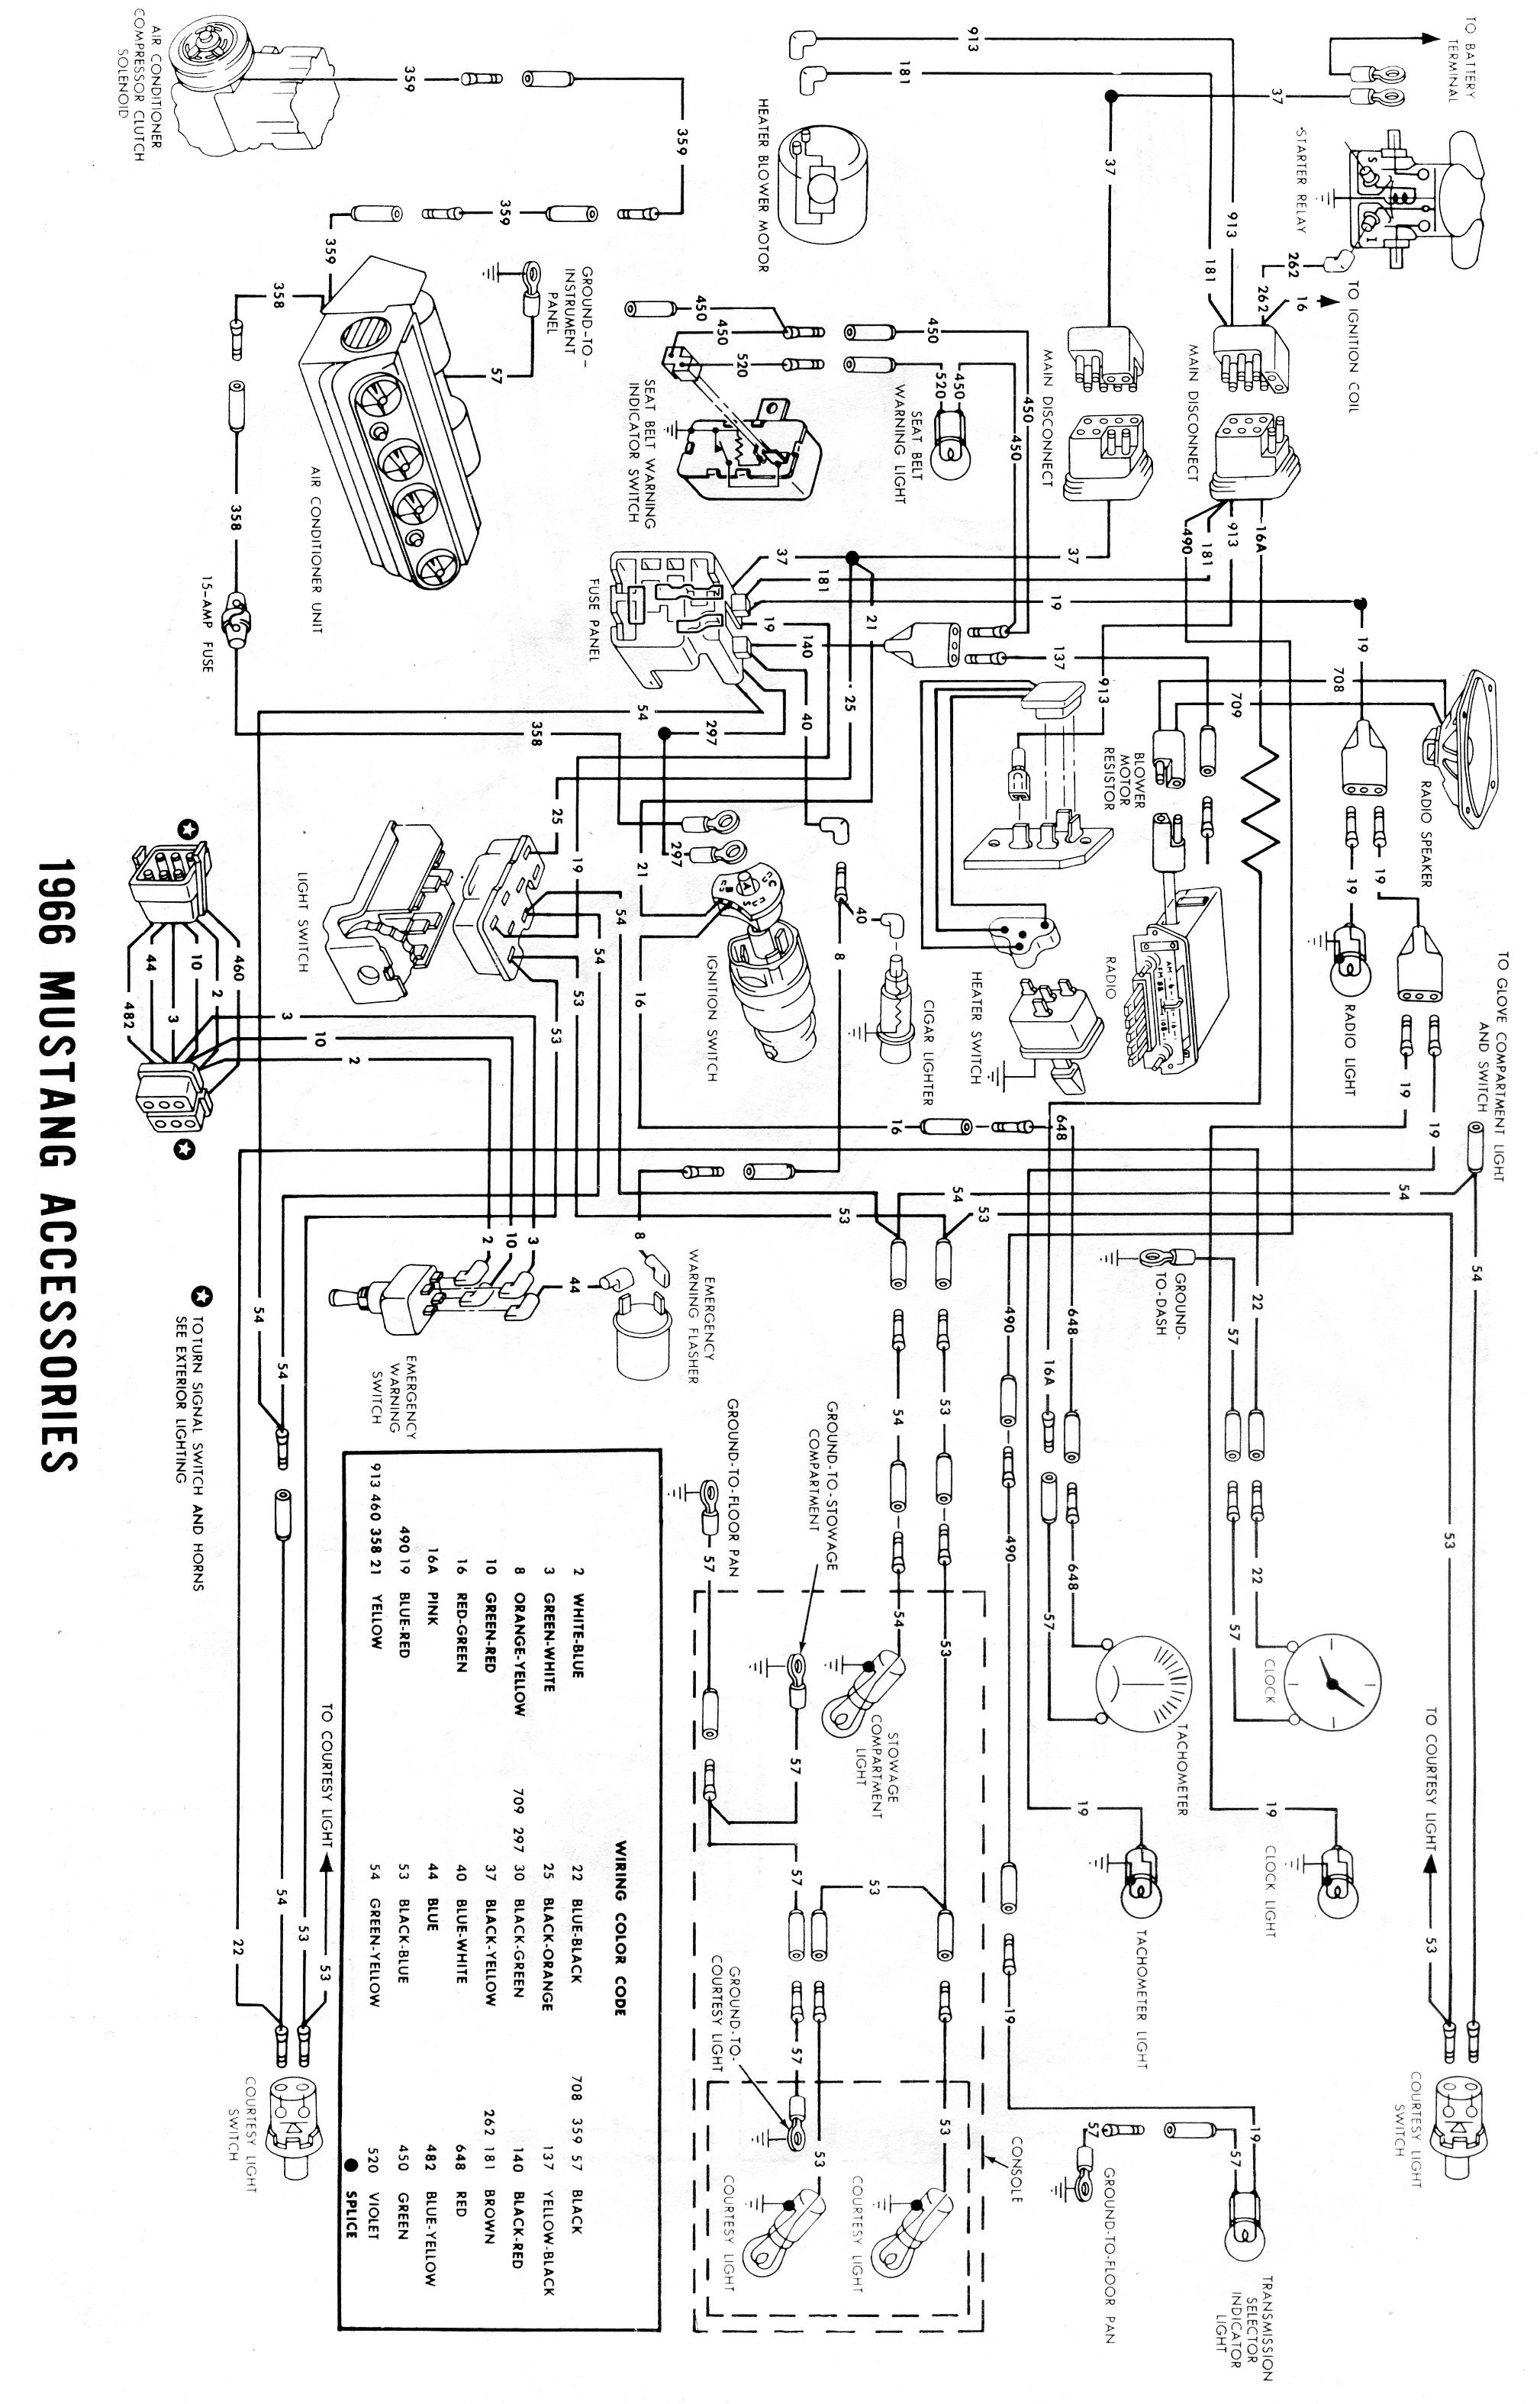 68 cougar fuse box diagram 68 wiring diagrams online